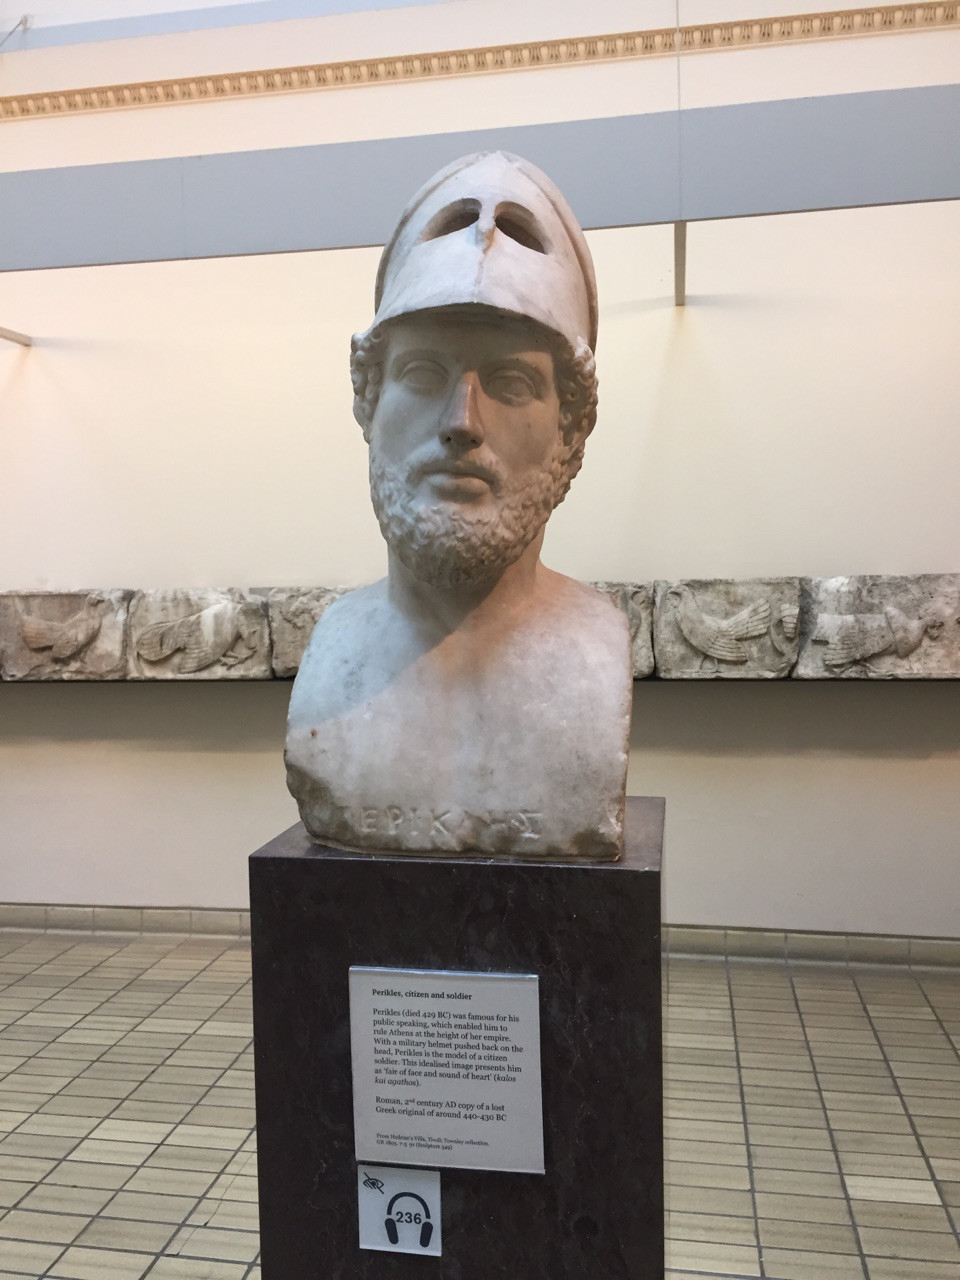 sculpture of Pericles